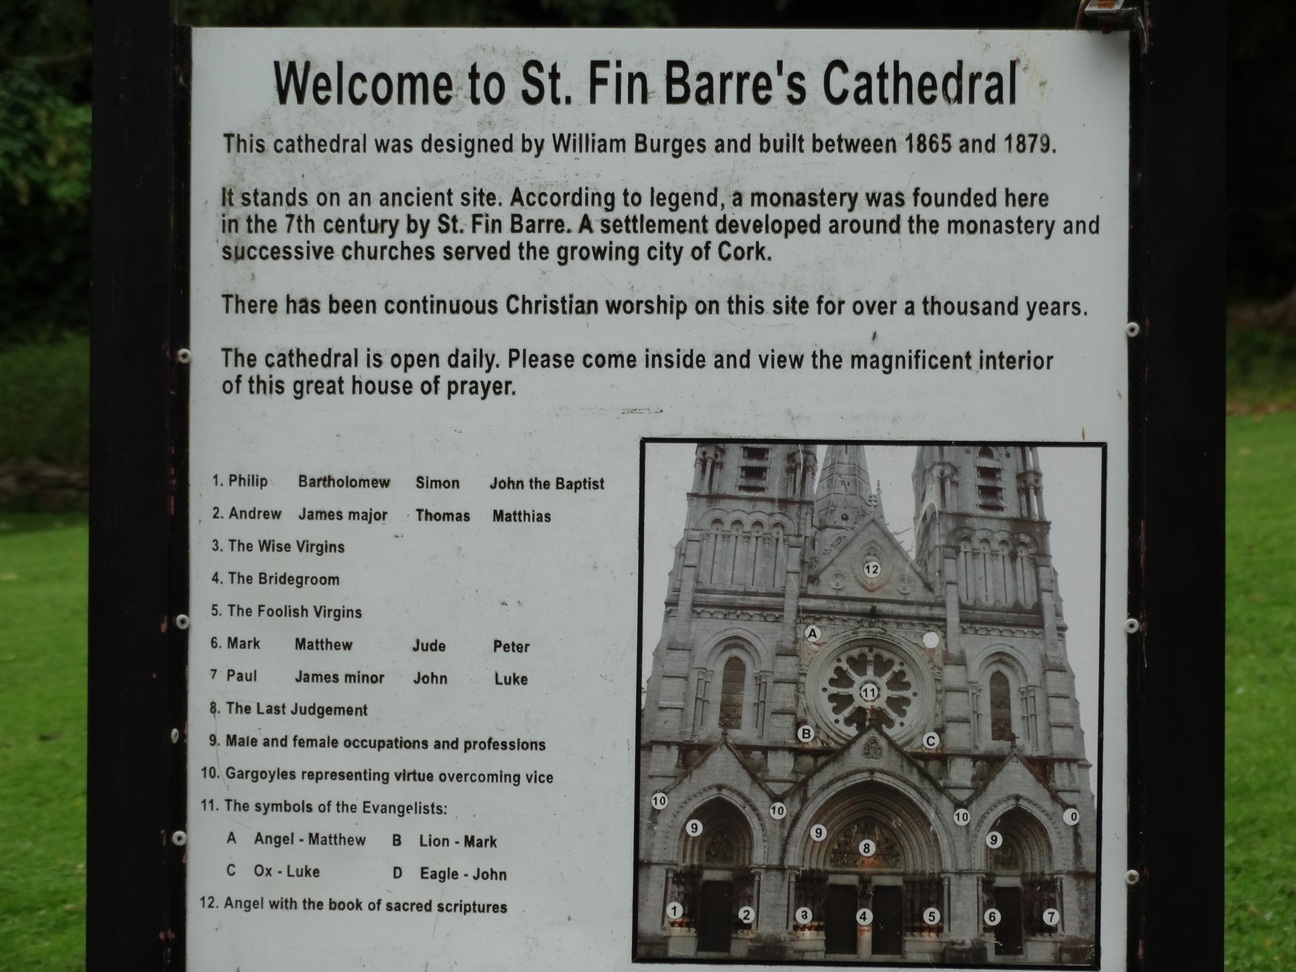 St Fin Barre's Cathedral